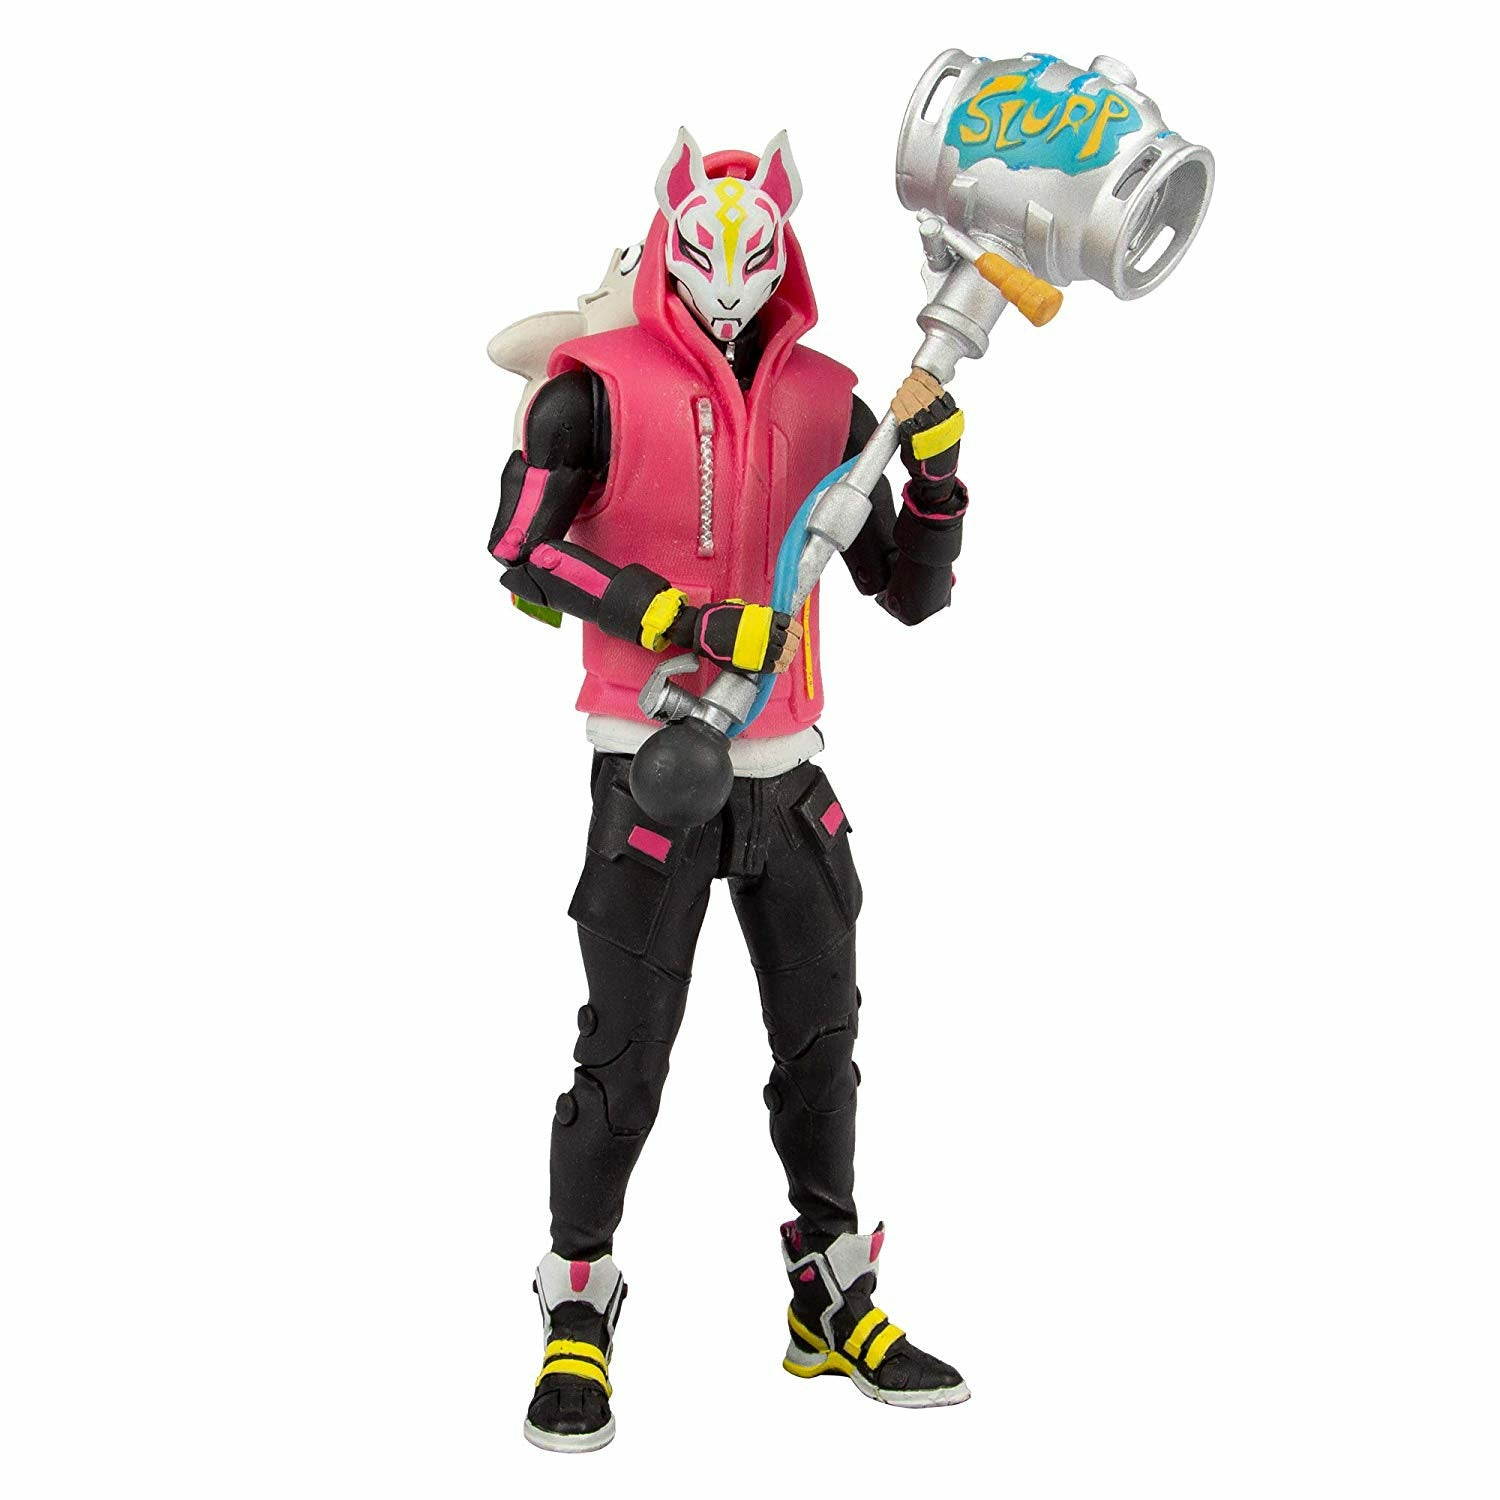 Fortnite Drift 7 inch Premium Action Figure